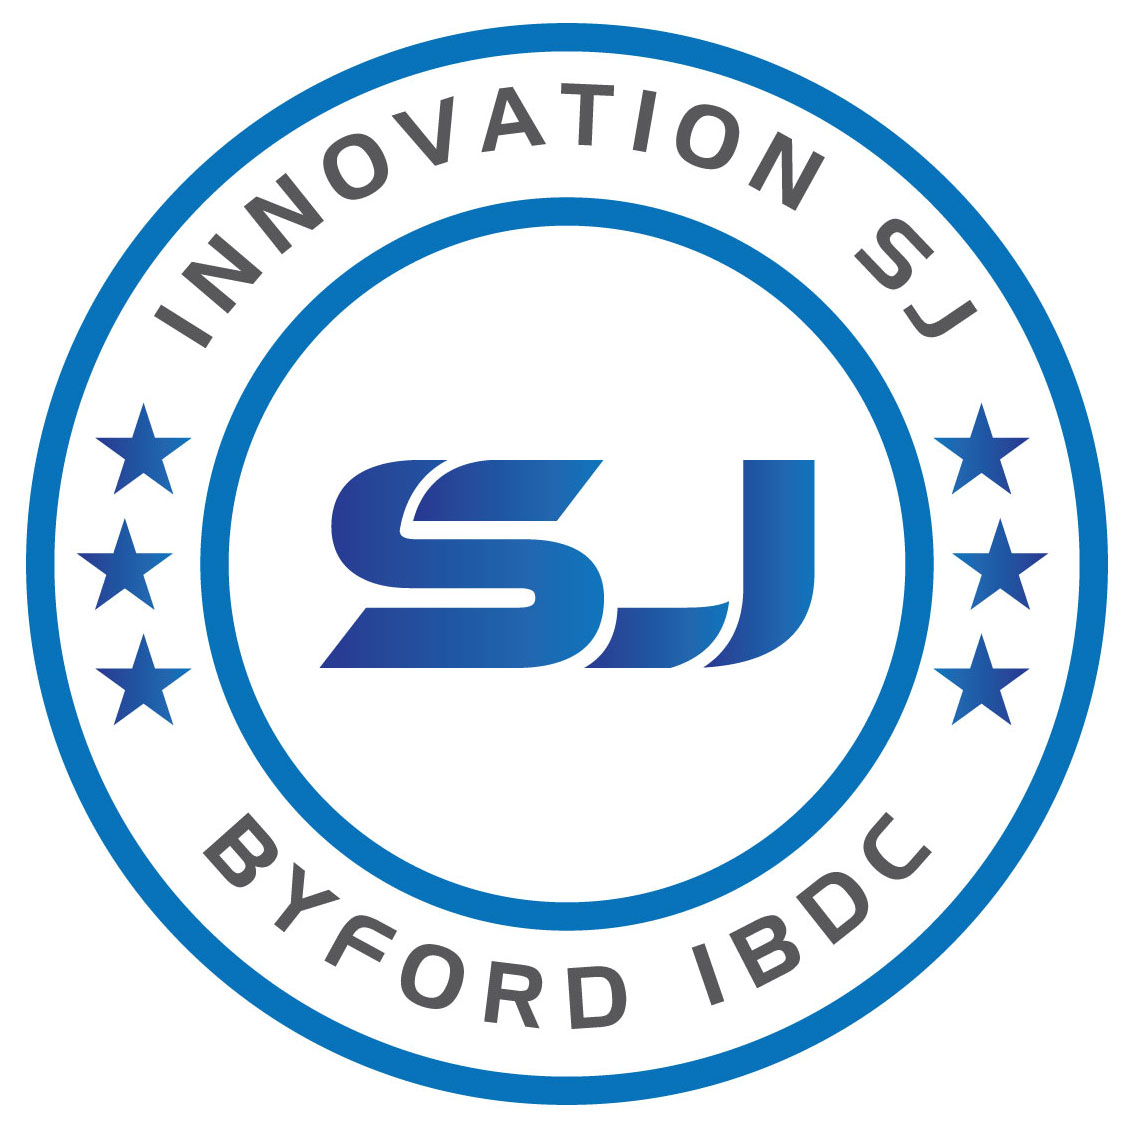 Byford Innovation and Business Development Centre